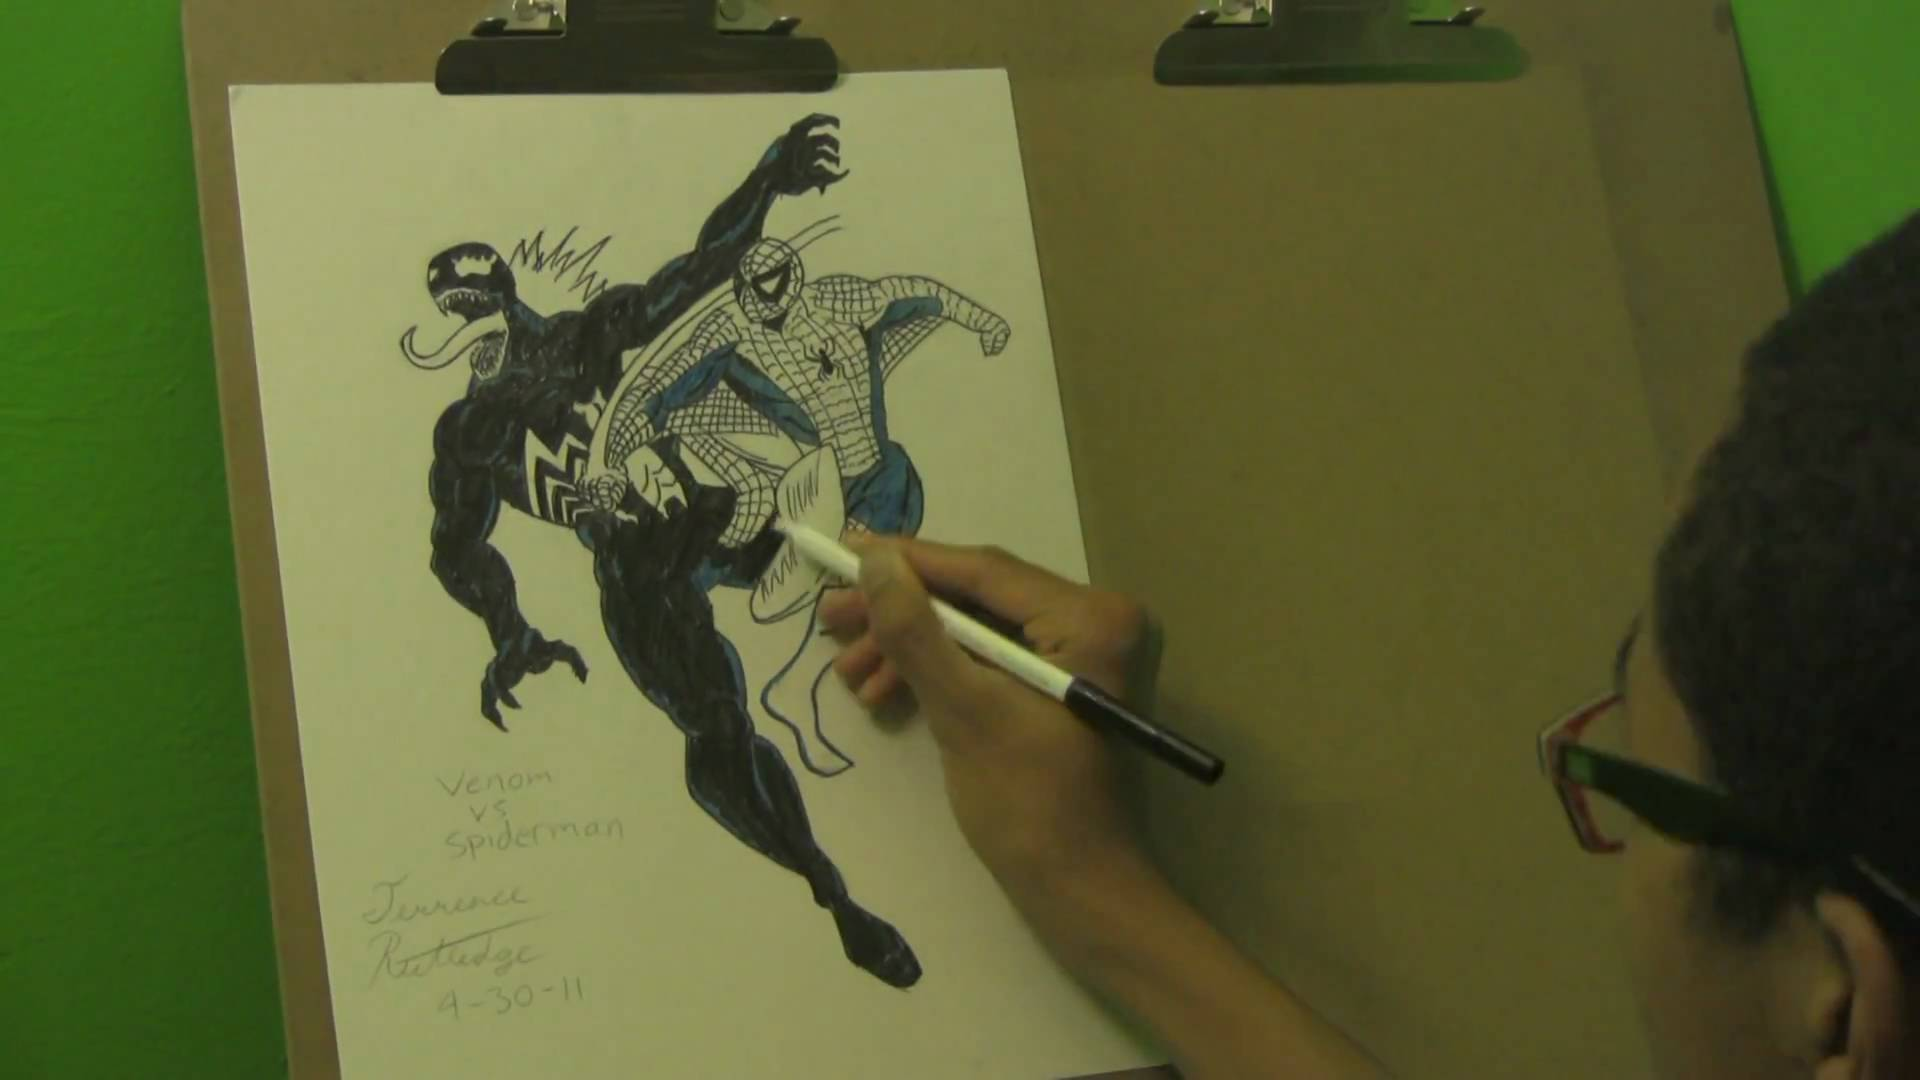 Spiderman Vs Venom Drawing At Getdrawings Com Free For Personal